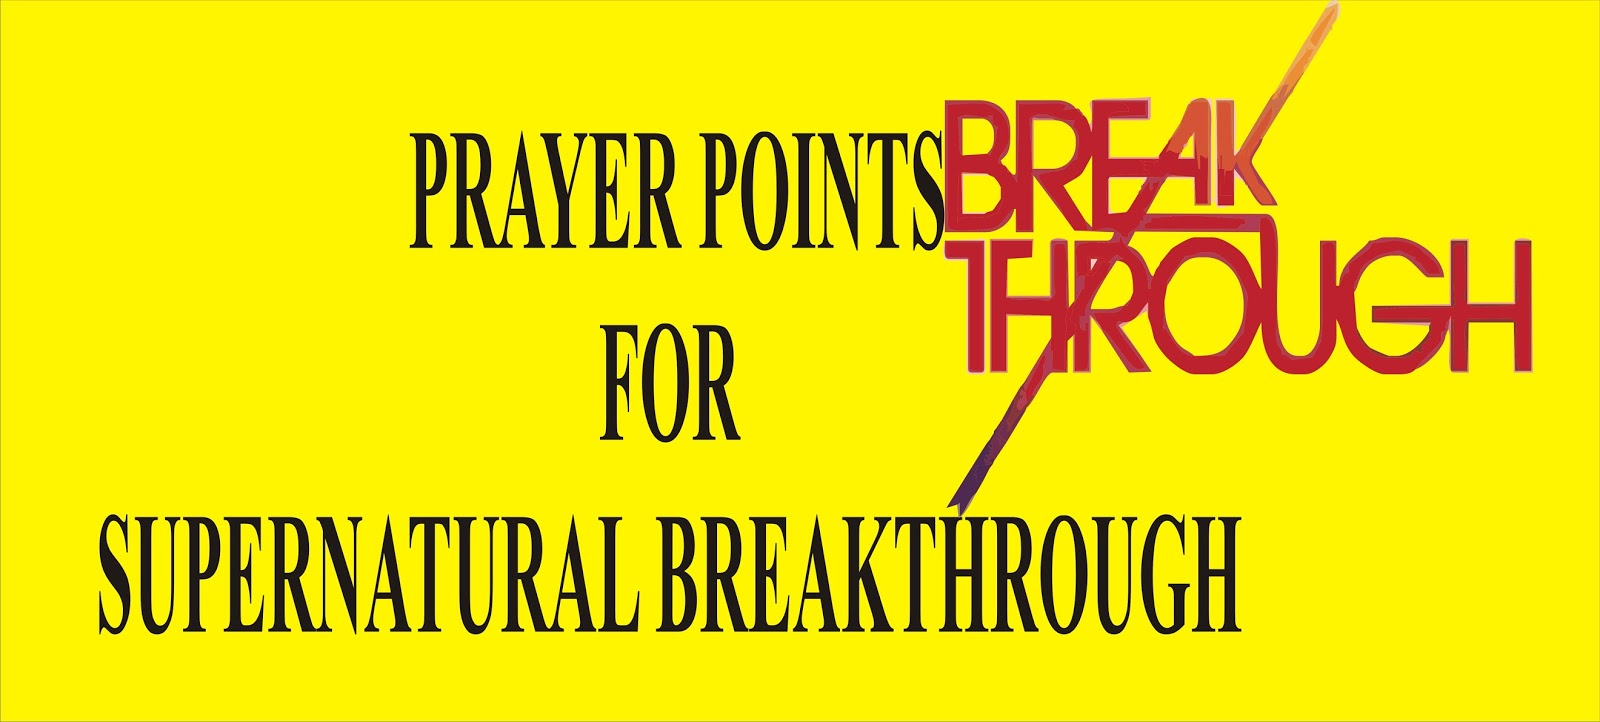 Prayer points for Dating Breakthrough in 2014